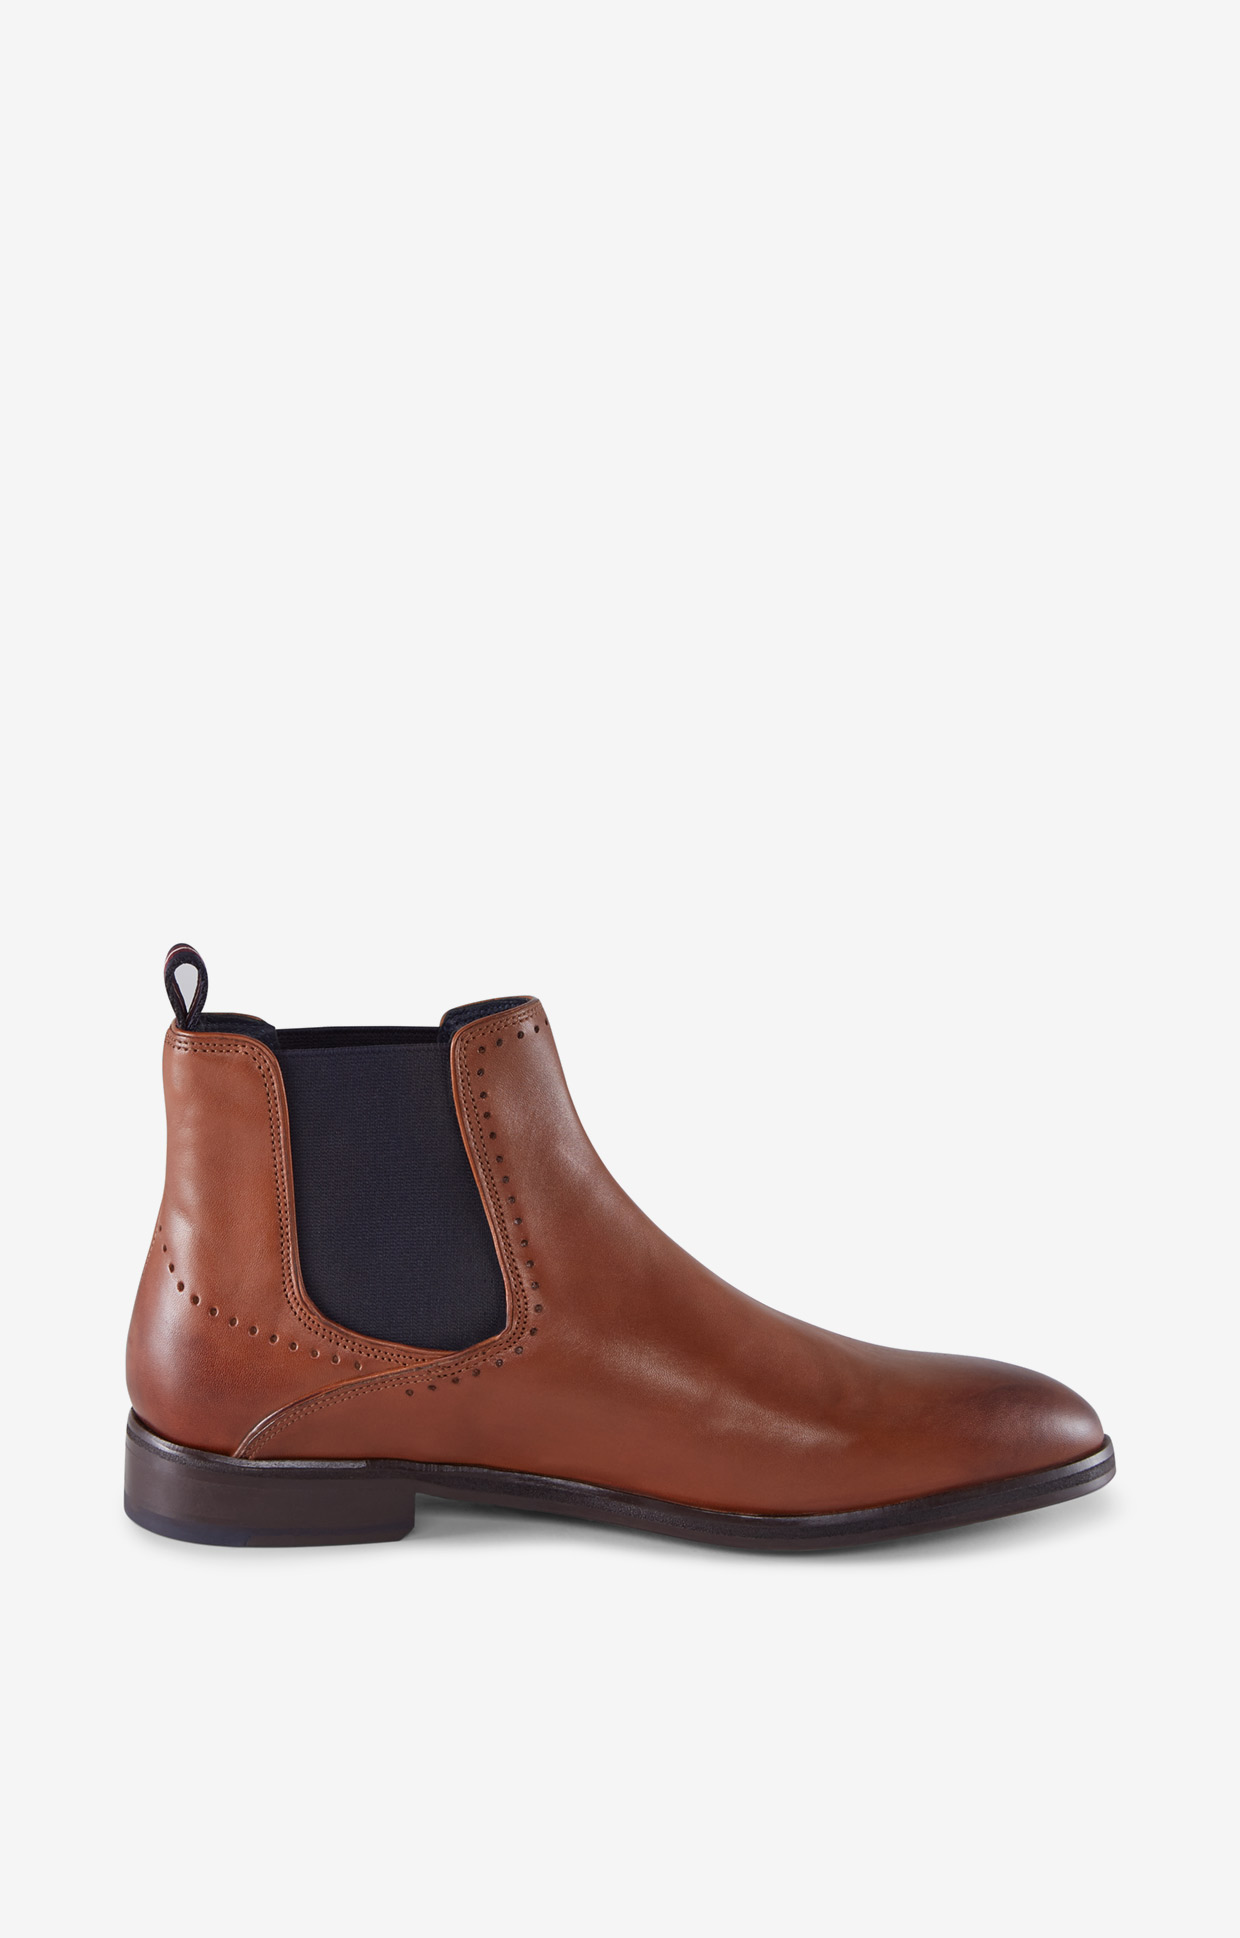 sports shoes 165ad 47064 Chelsea Boots Kleitos in Cognac